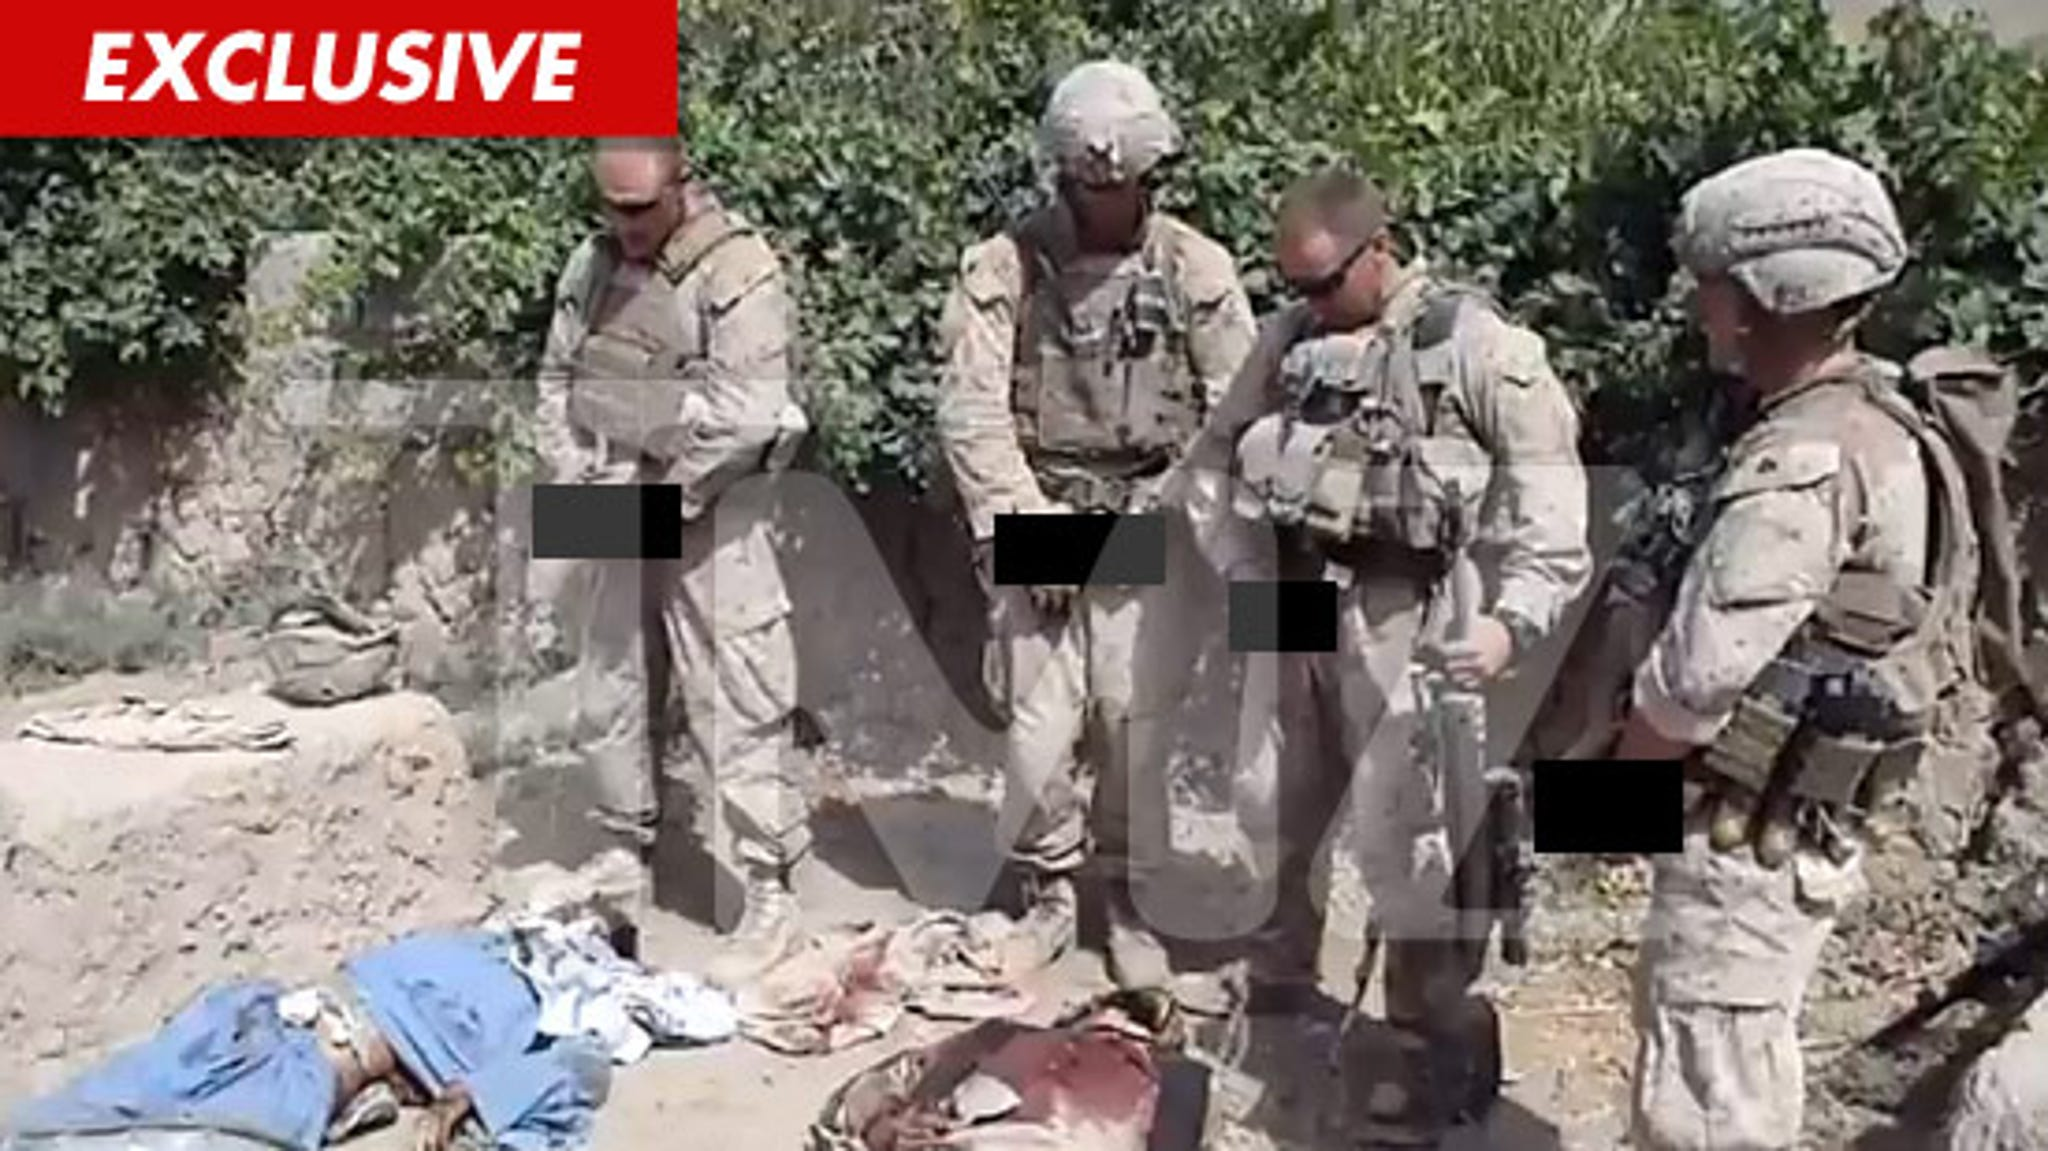 U S  Marines to Launch Investigation into Soldiers Urinating